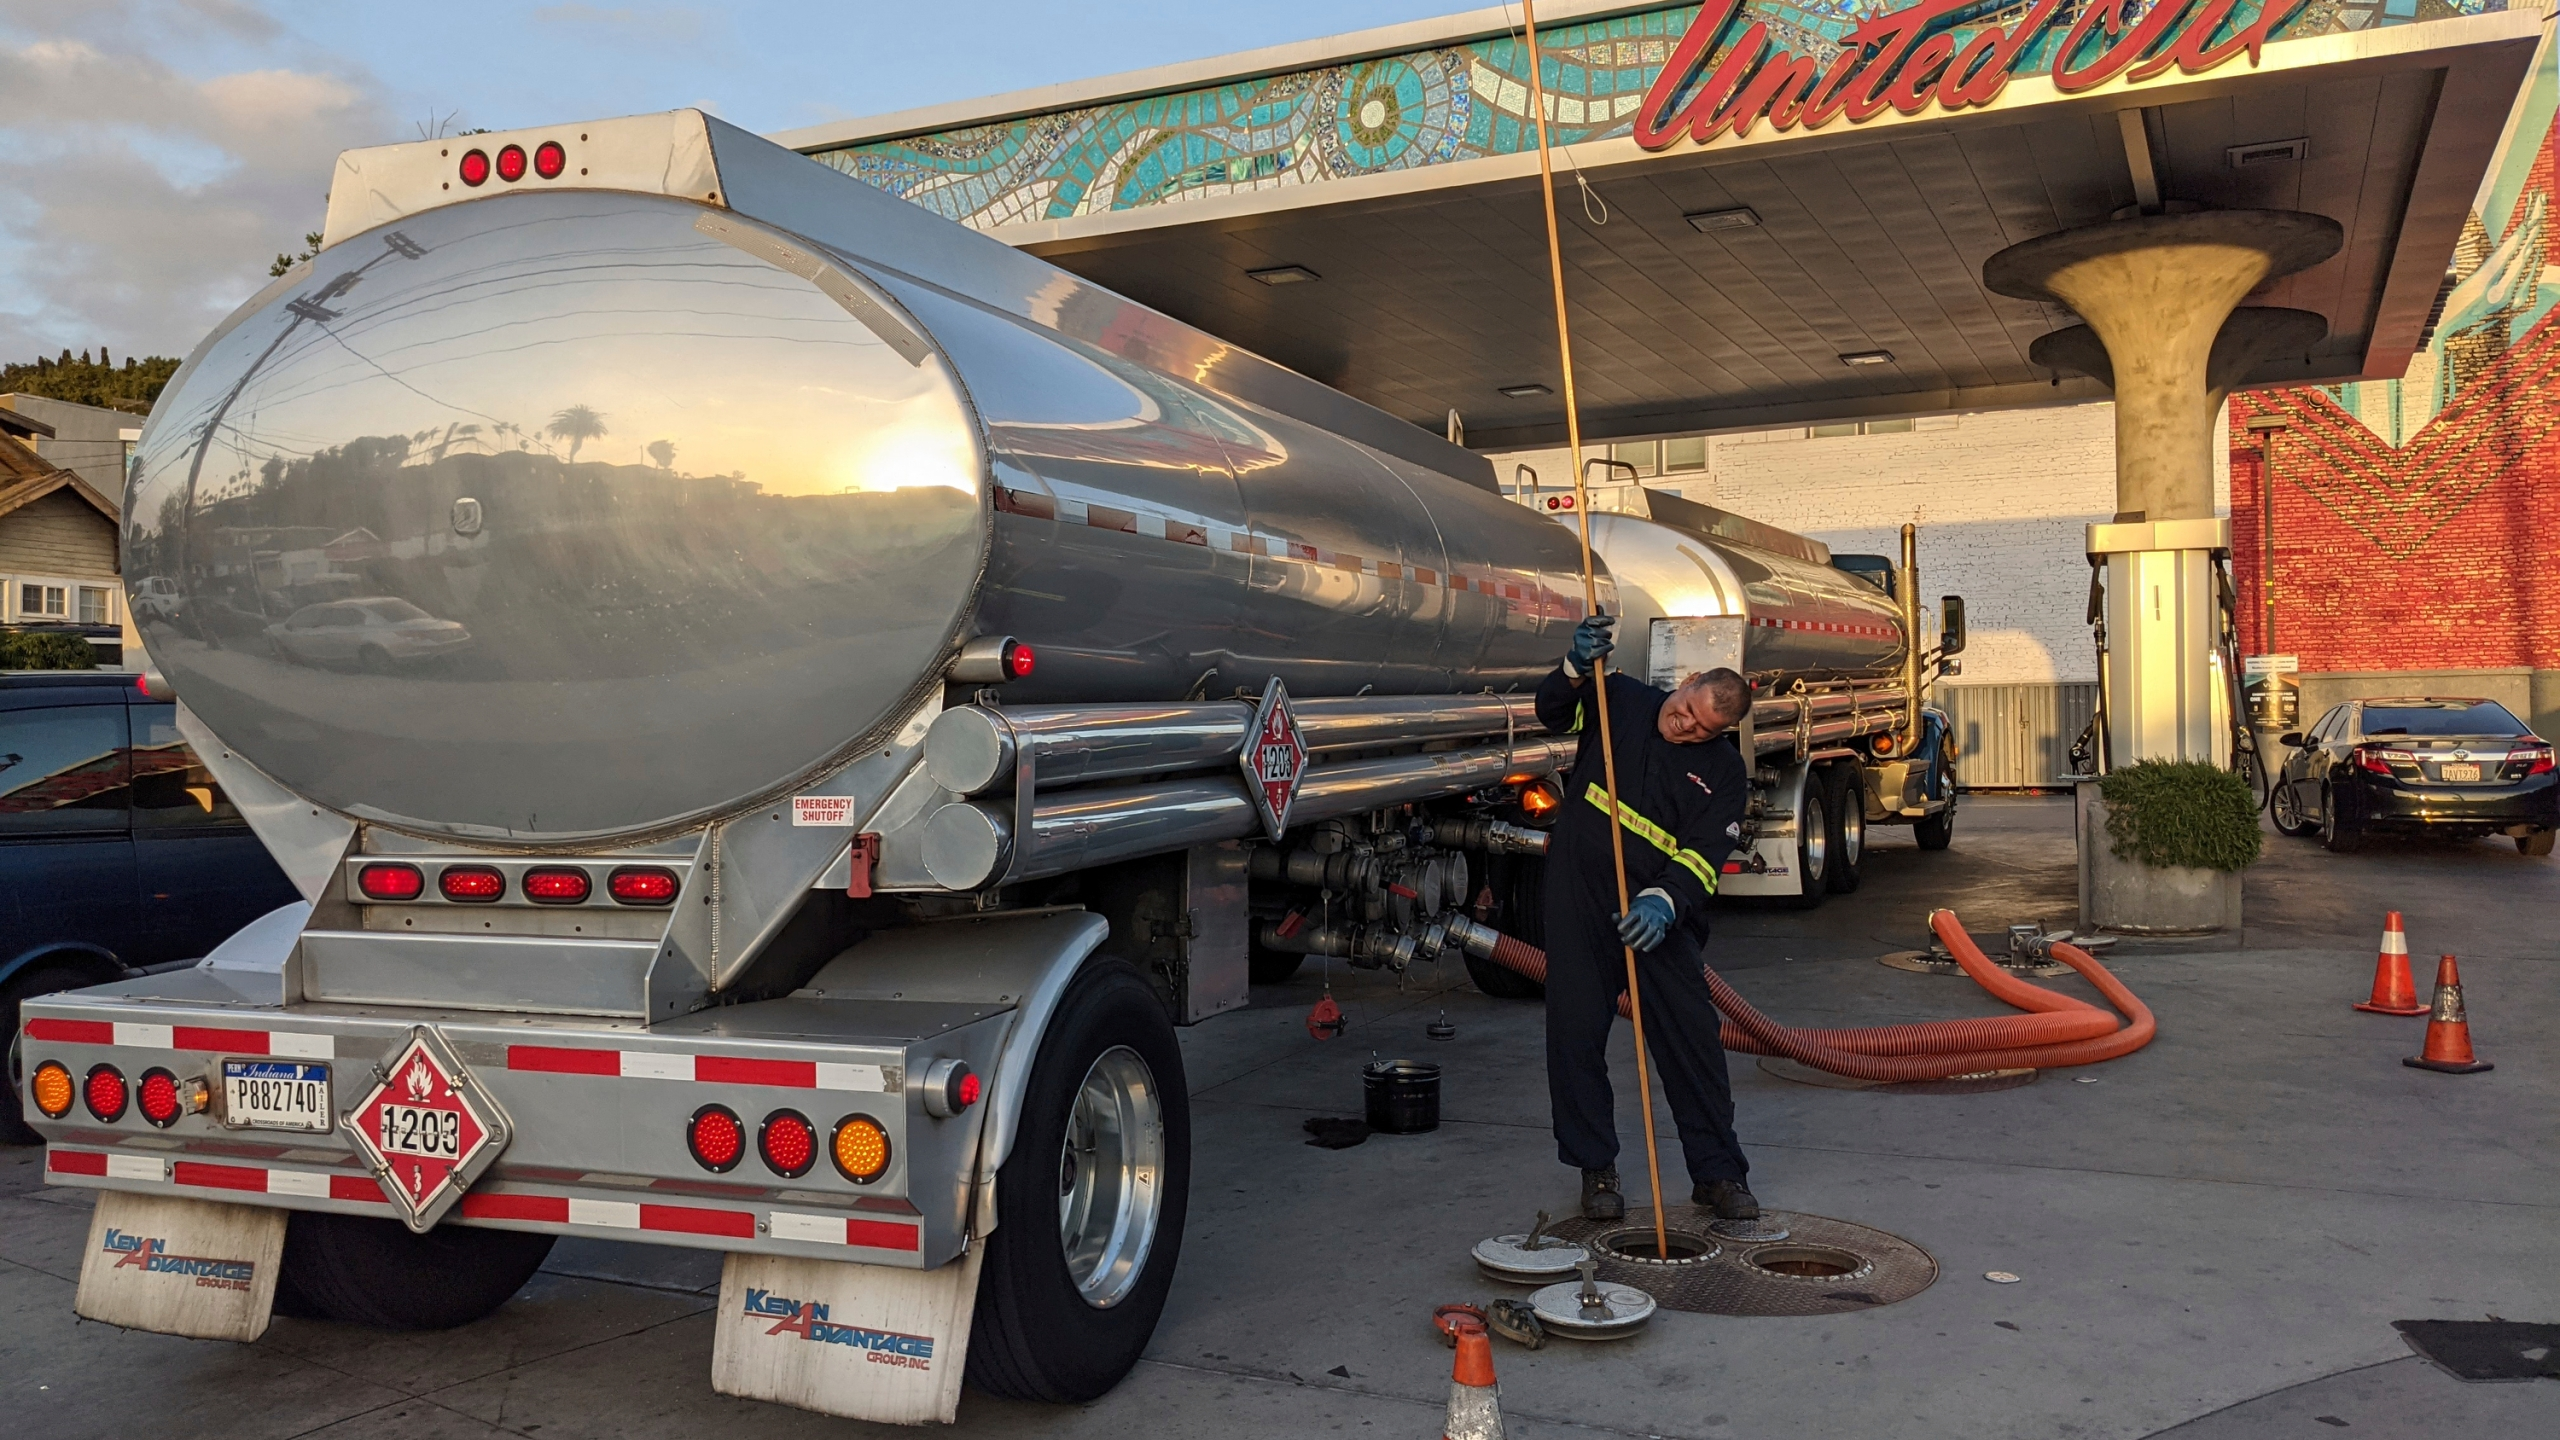 In this May 20, 2021 photo, a fuel truck driver checks the gasoline tank level at a United Oil gas station in Sunset Blvd., in Los Angeles. (AP Photo/Damian Dovarganes)